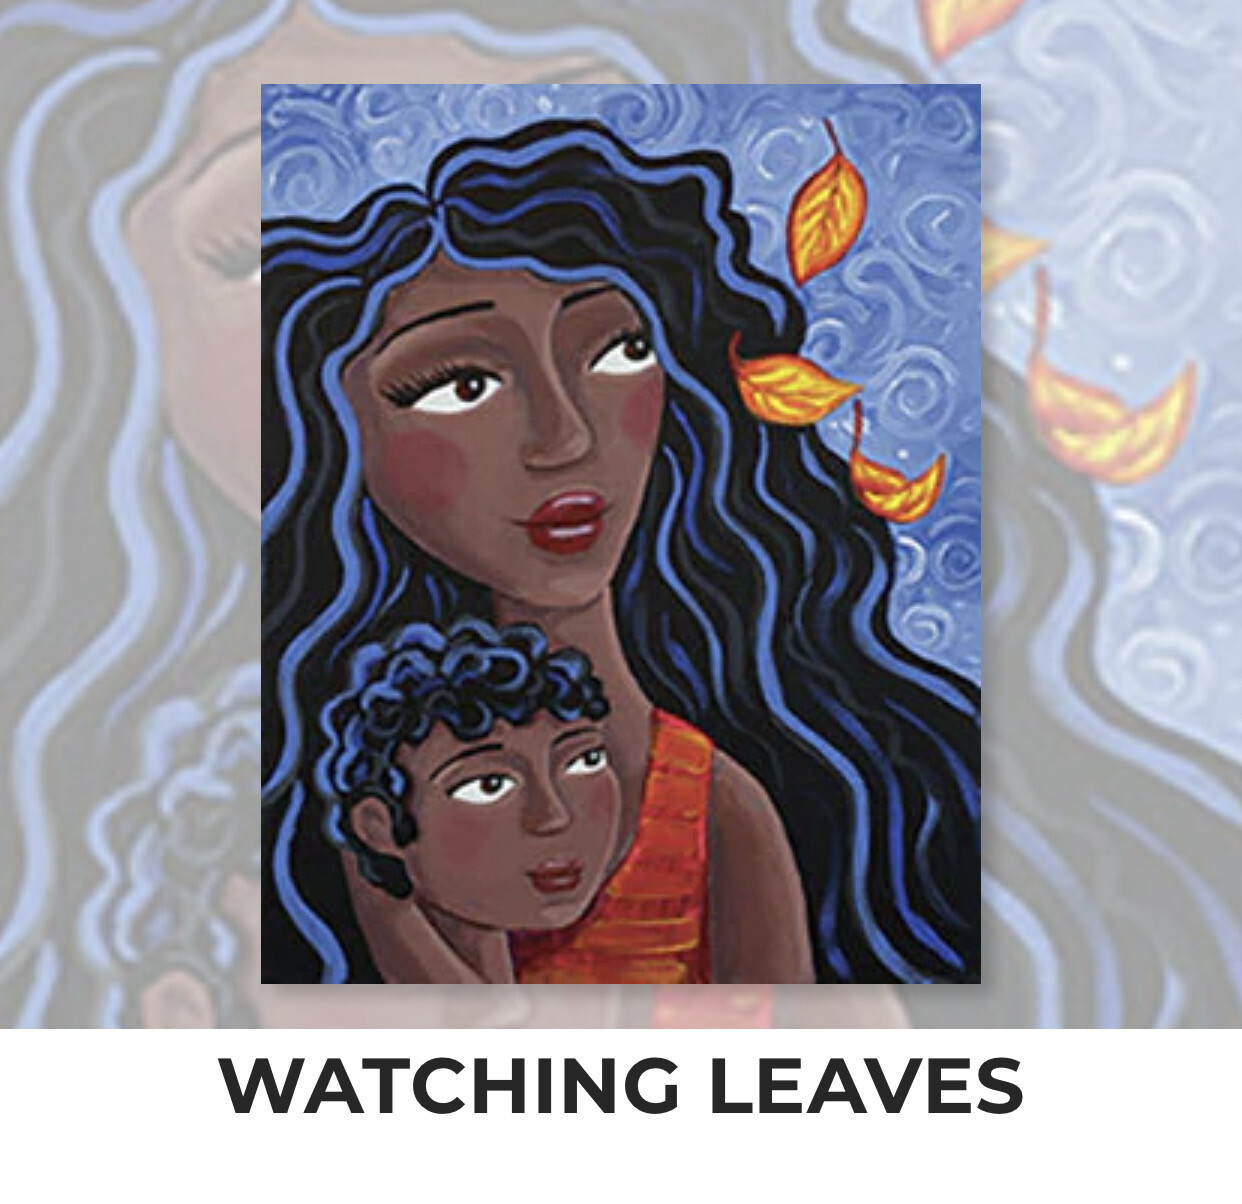 Watching Leaves ADULT Acrylic Paint On Canvas DIY Art Kit - 3 Week Special Order